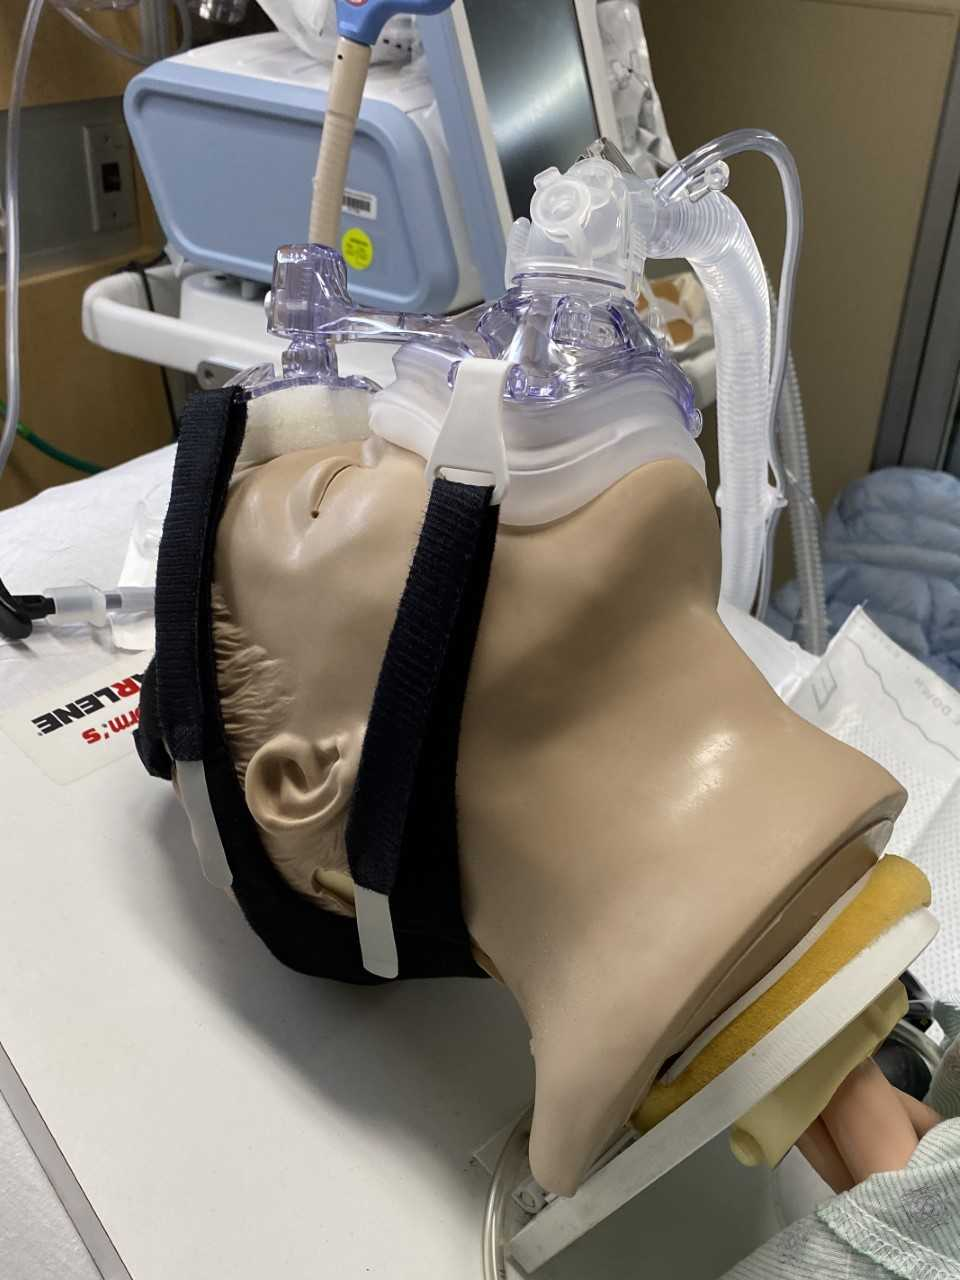 Harnessing the life-saving capabilities of in situ simulation to improve airway management and readiness